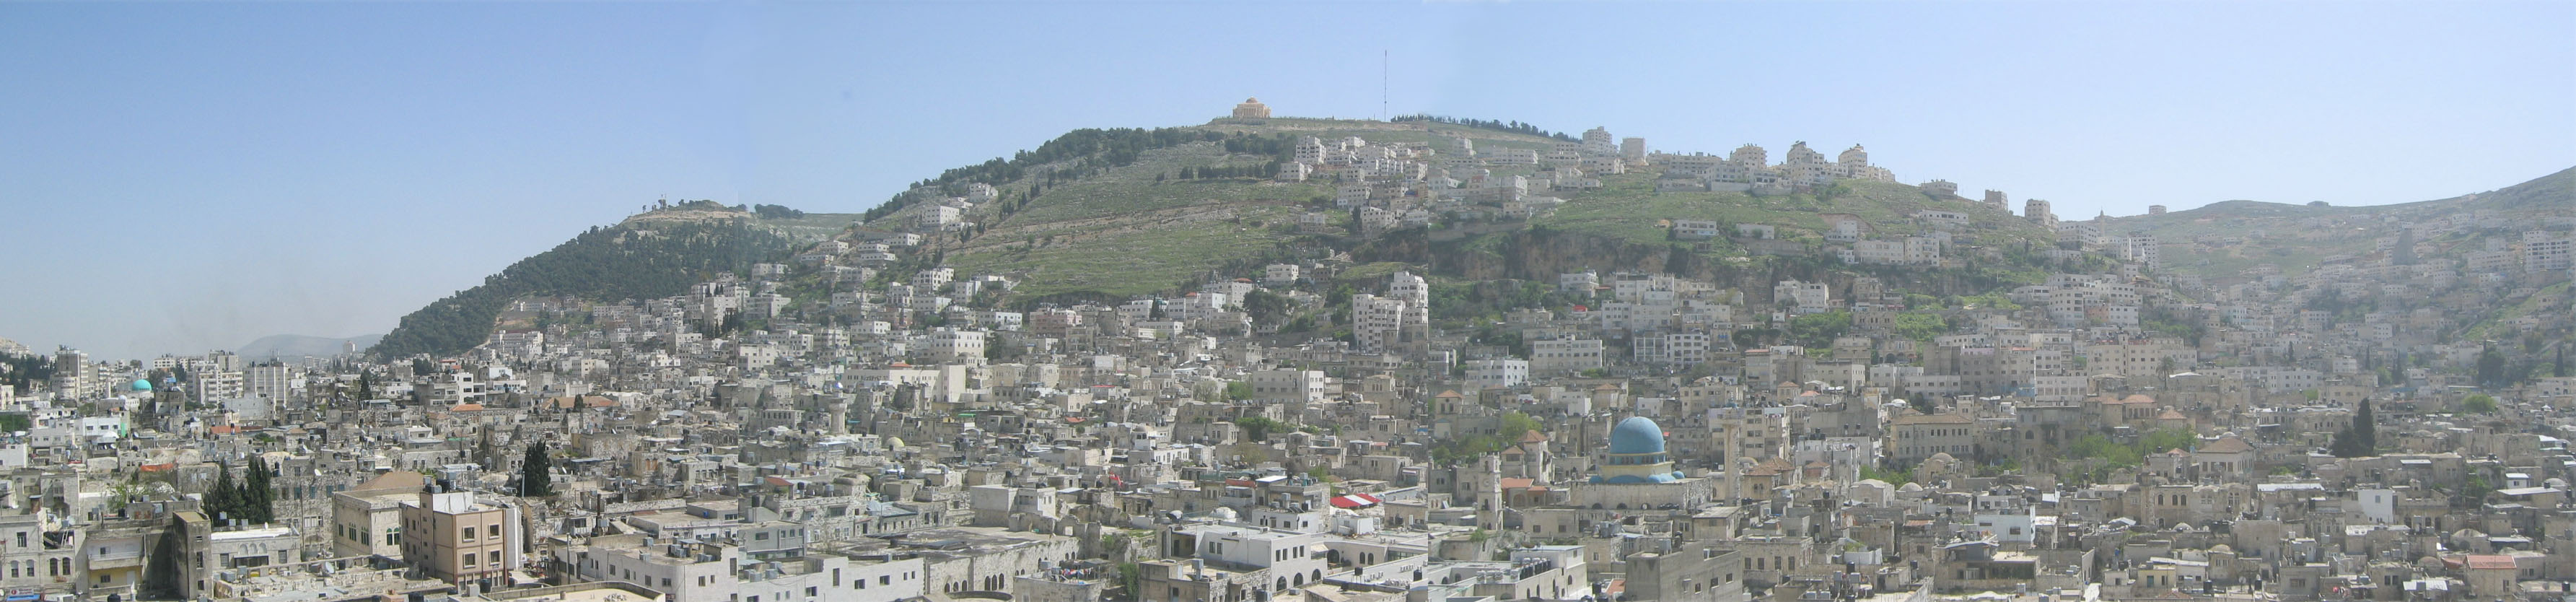 Nablus - نابلس : Panoramic view, click the picture to enlarge